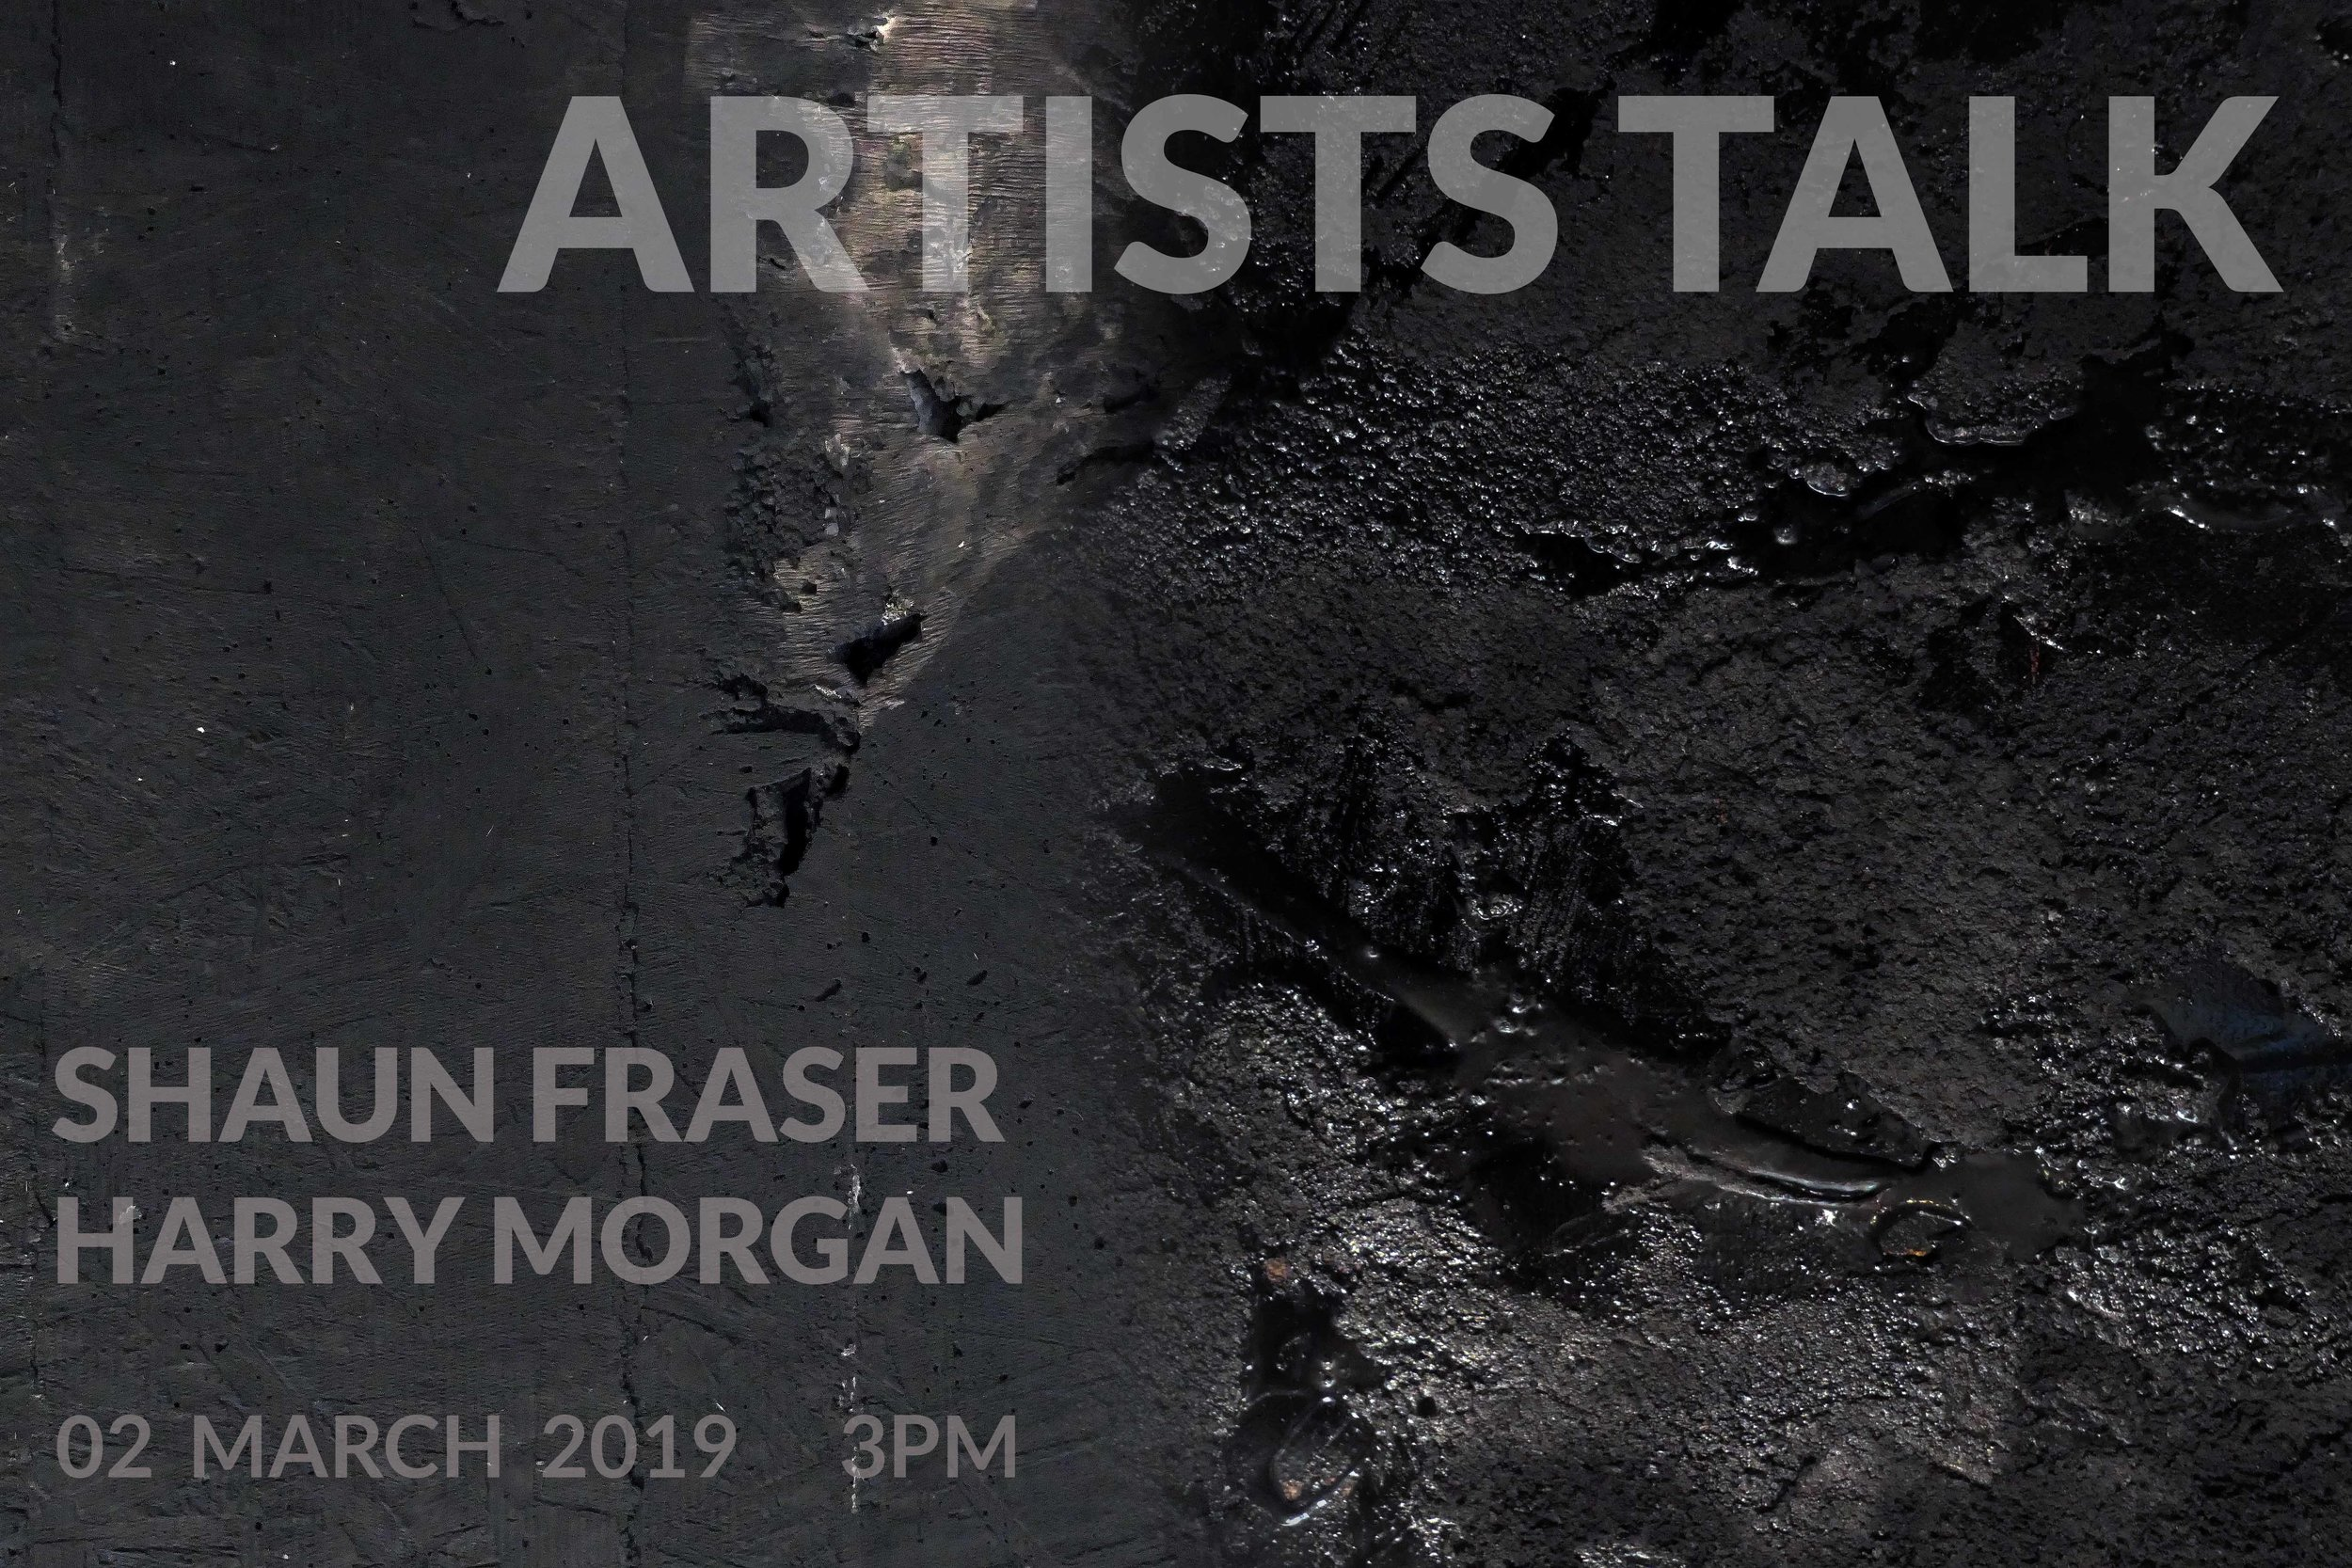 Artists Talk: Shaun Fraser & Harry Morgan at No 20 Arts